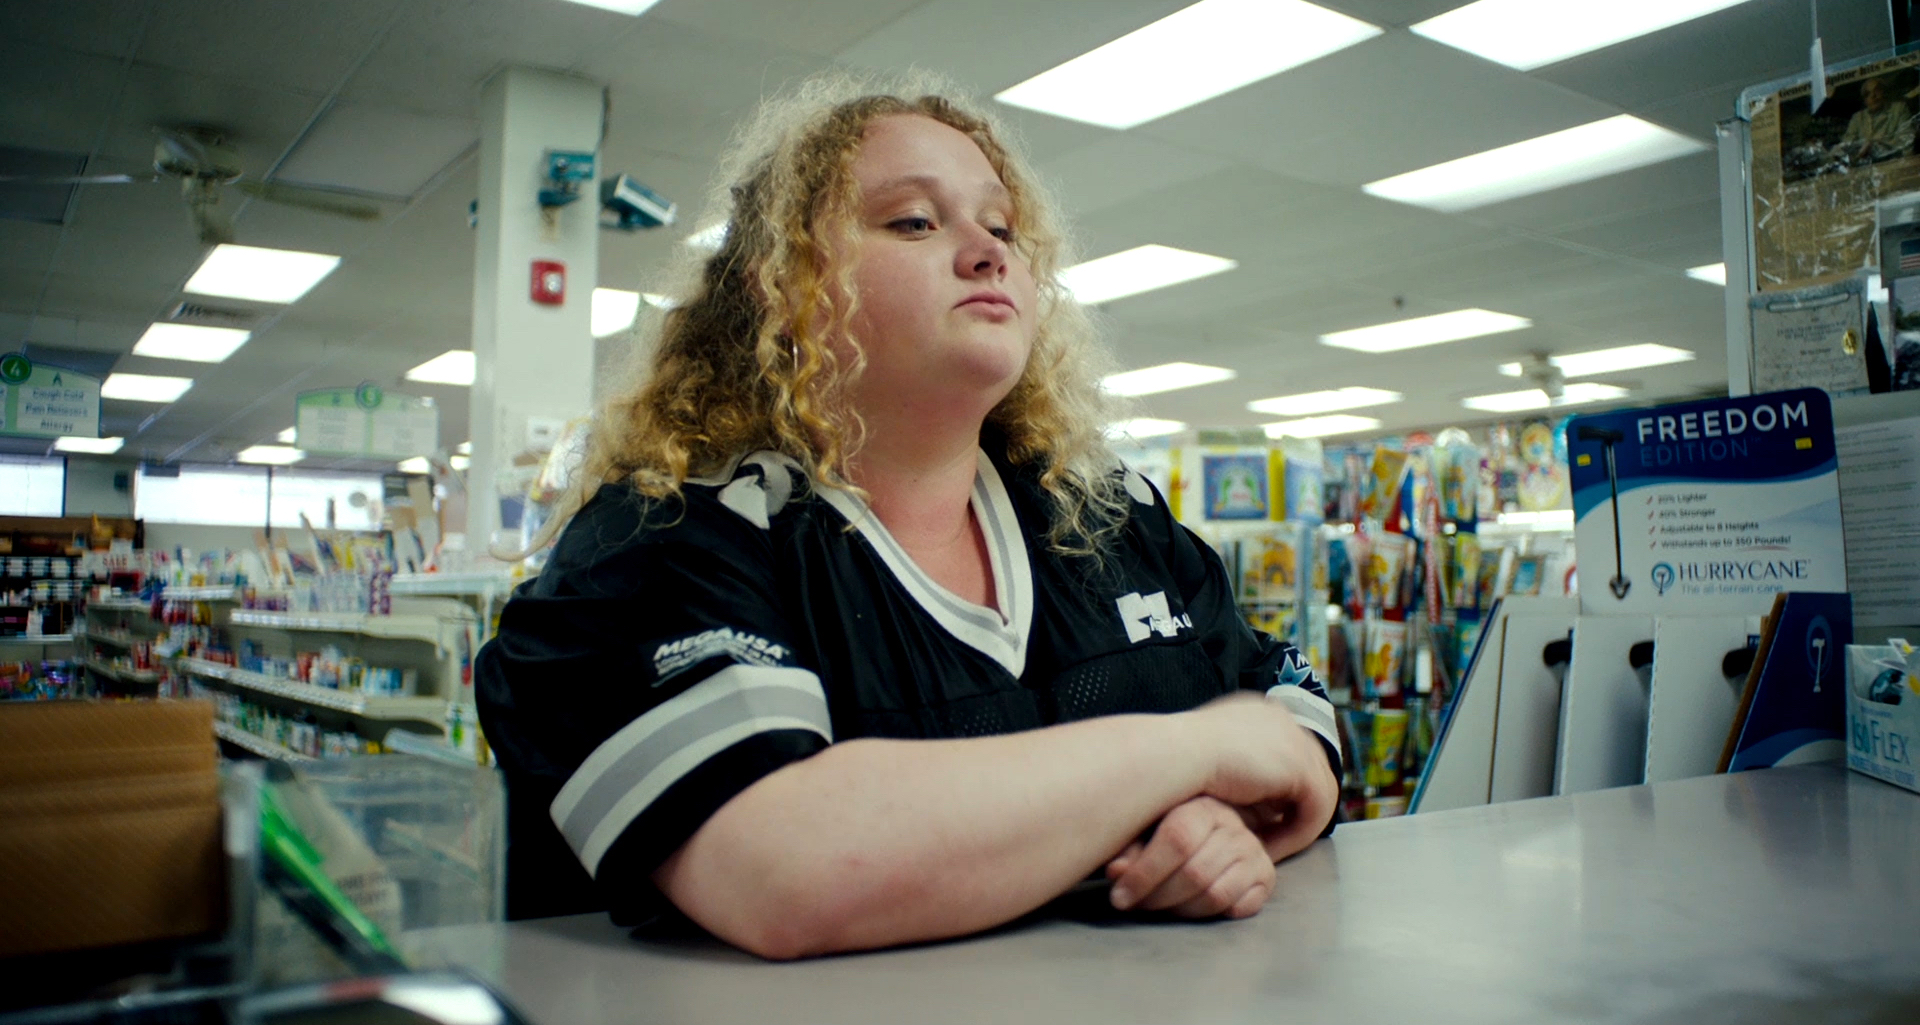 Danielle Macdonald in the film PATTI CAKE$. Photo courtesy of Fox Searchlight Pictures. © 2017 Twentieth Century Fox Film Corporation All Rights Reserved